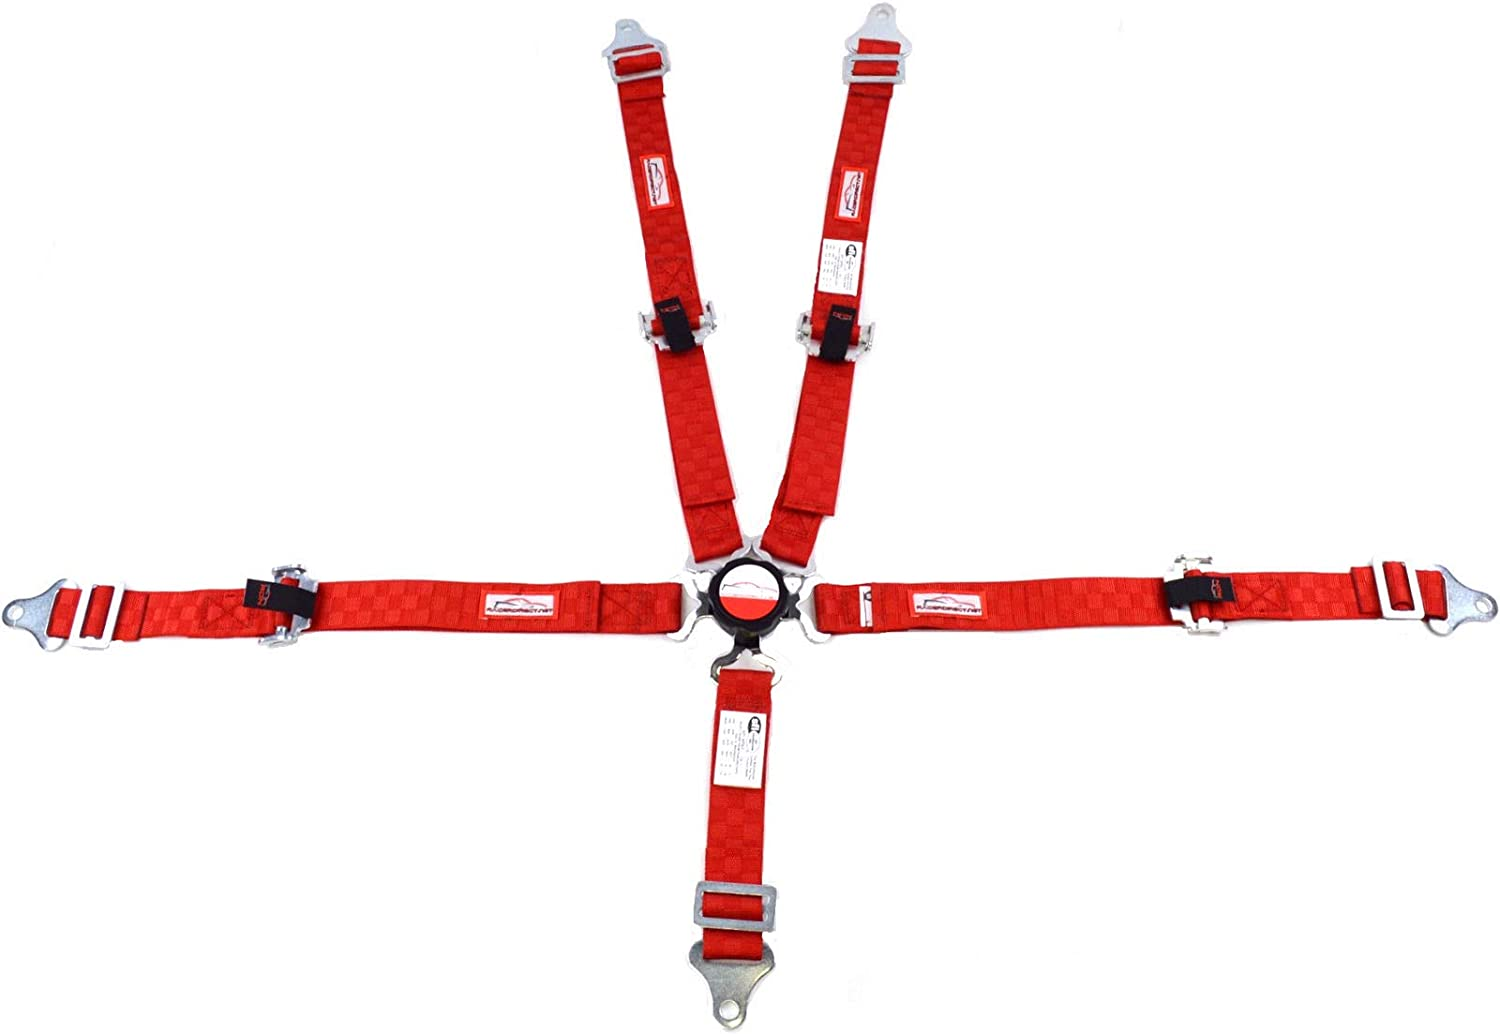 Racerdirect RED Checkerboard JR Racing 5 Point Harness SFI 16.1 CAM Lock Pull UP Lap Belts ROLL BAR Mount